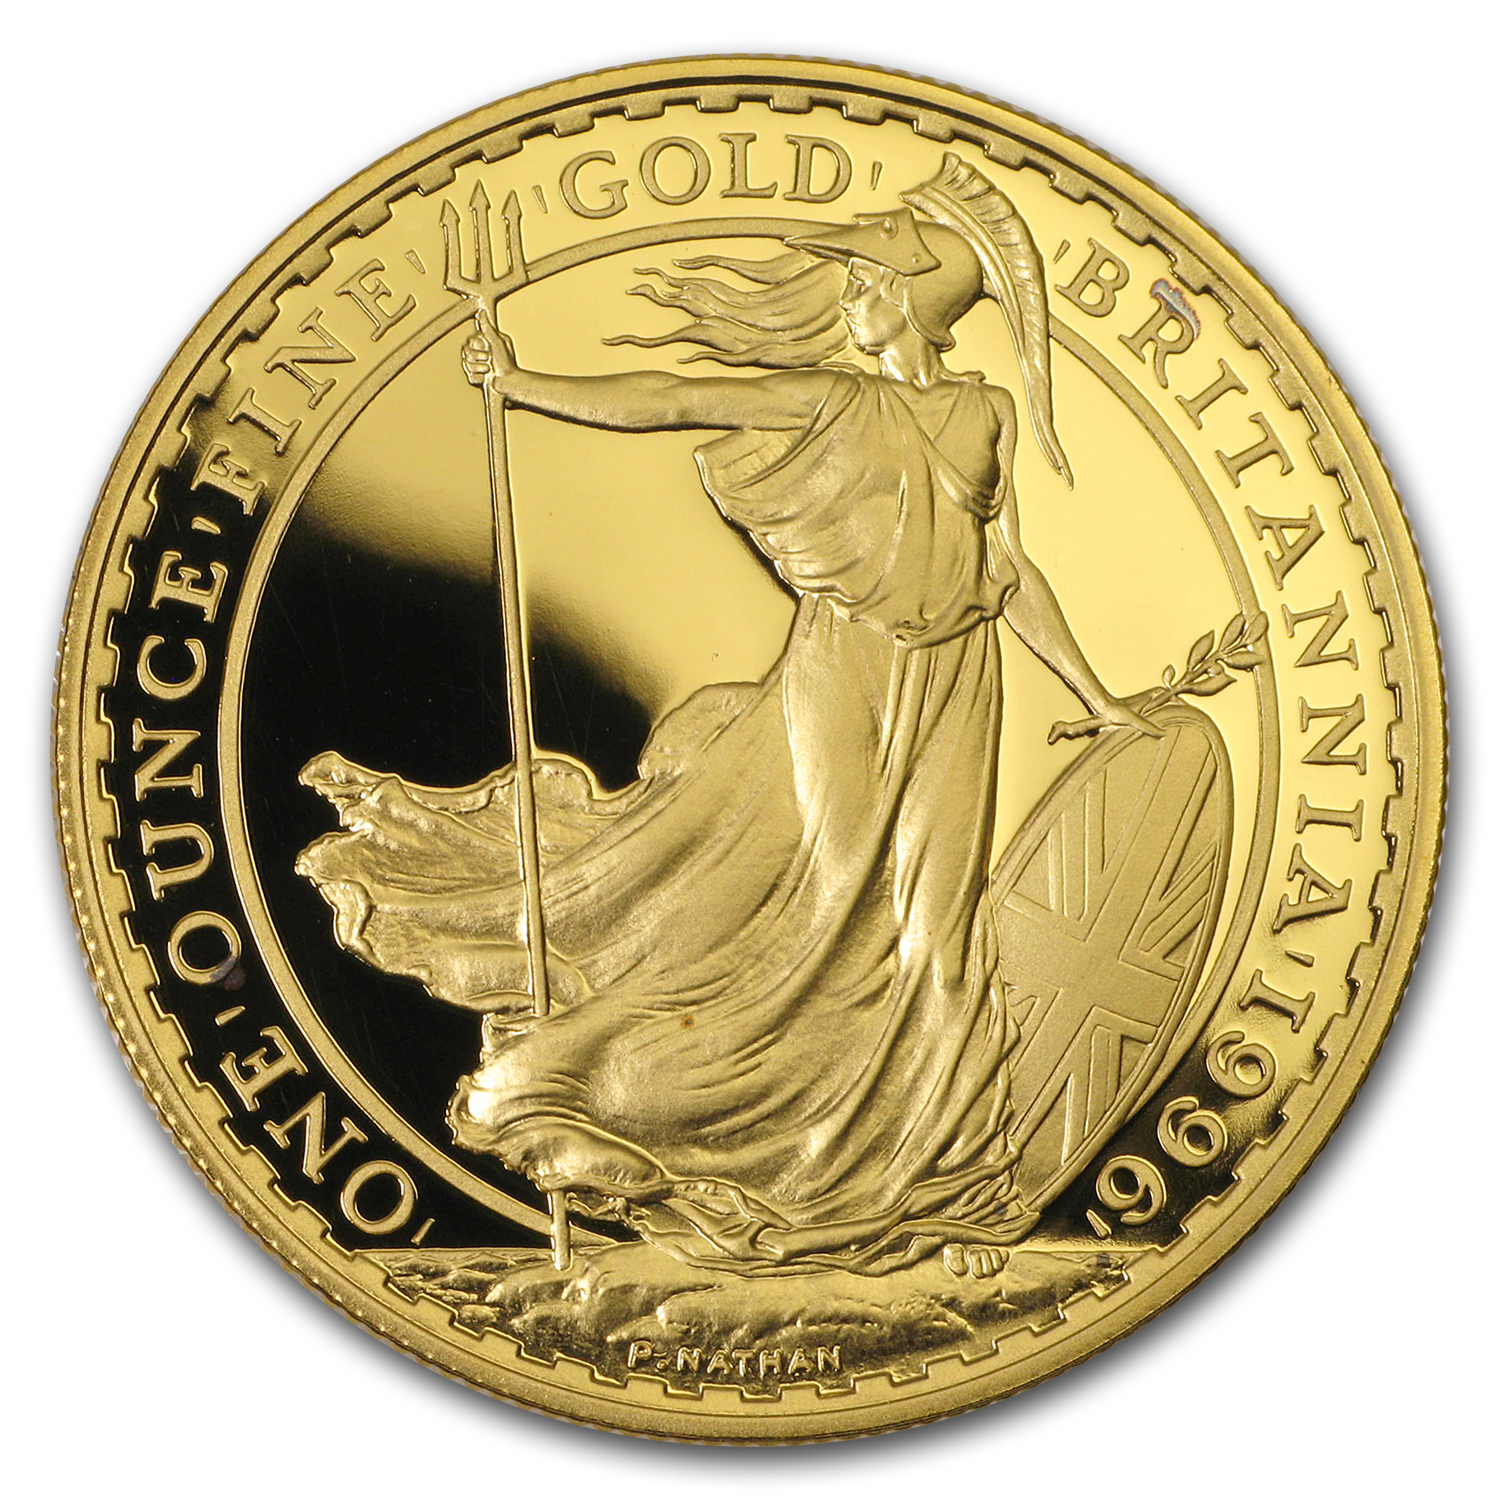 1996 Great Britain Proof Gold 1 oz Britannia